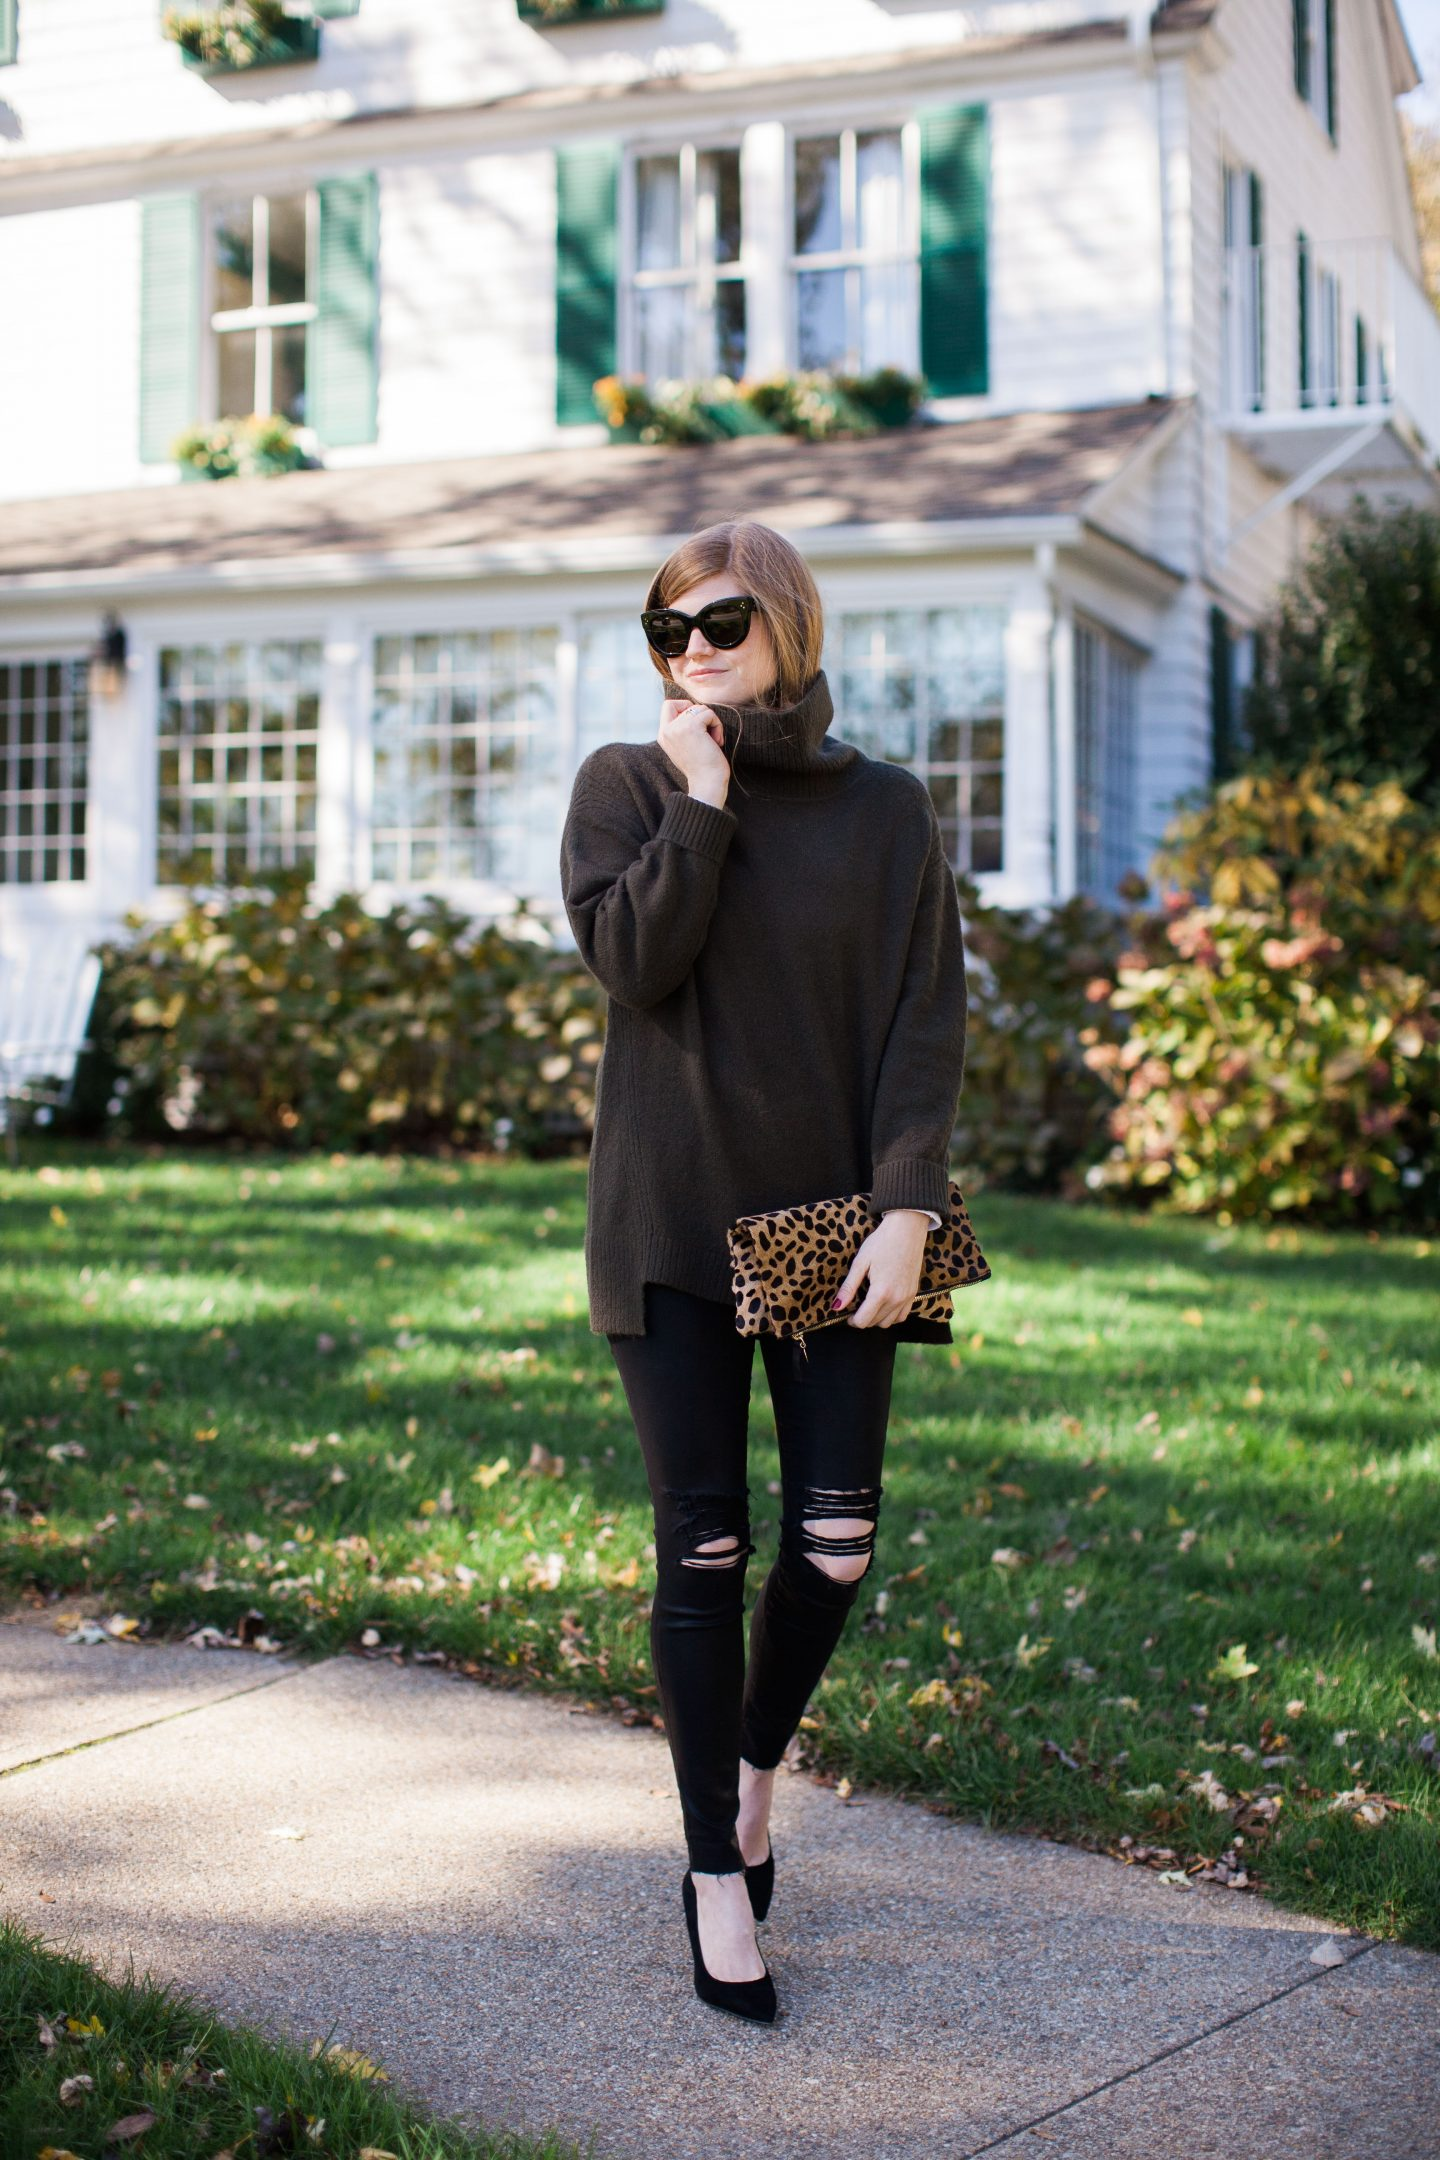 Lifestyle blogger Mollie Sheperdson of A Stylish Side Project shares a Thanksgiving outfit idea